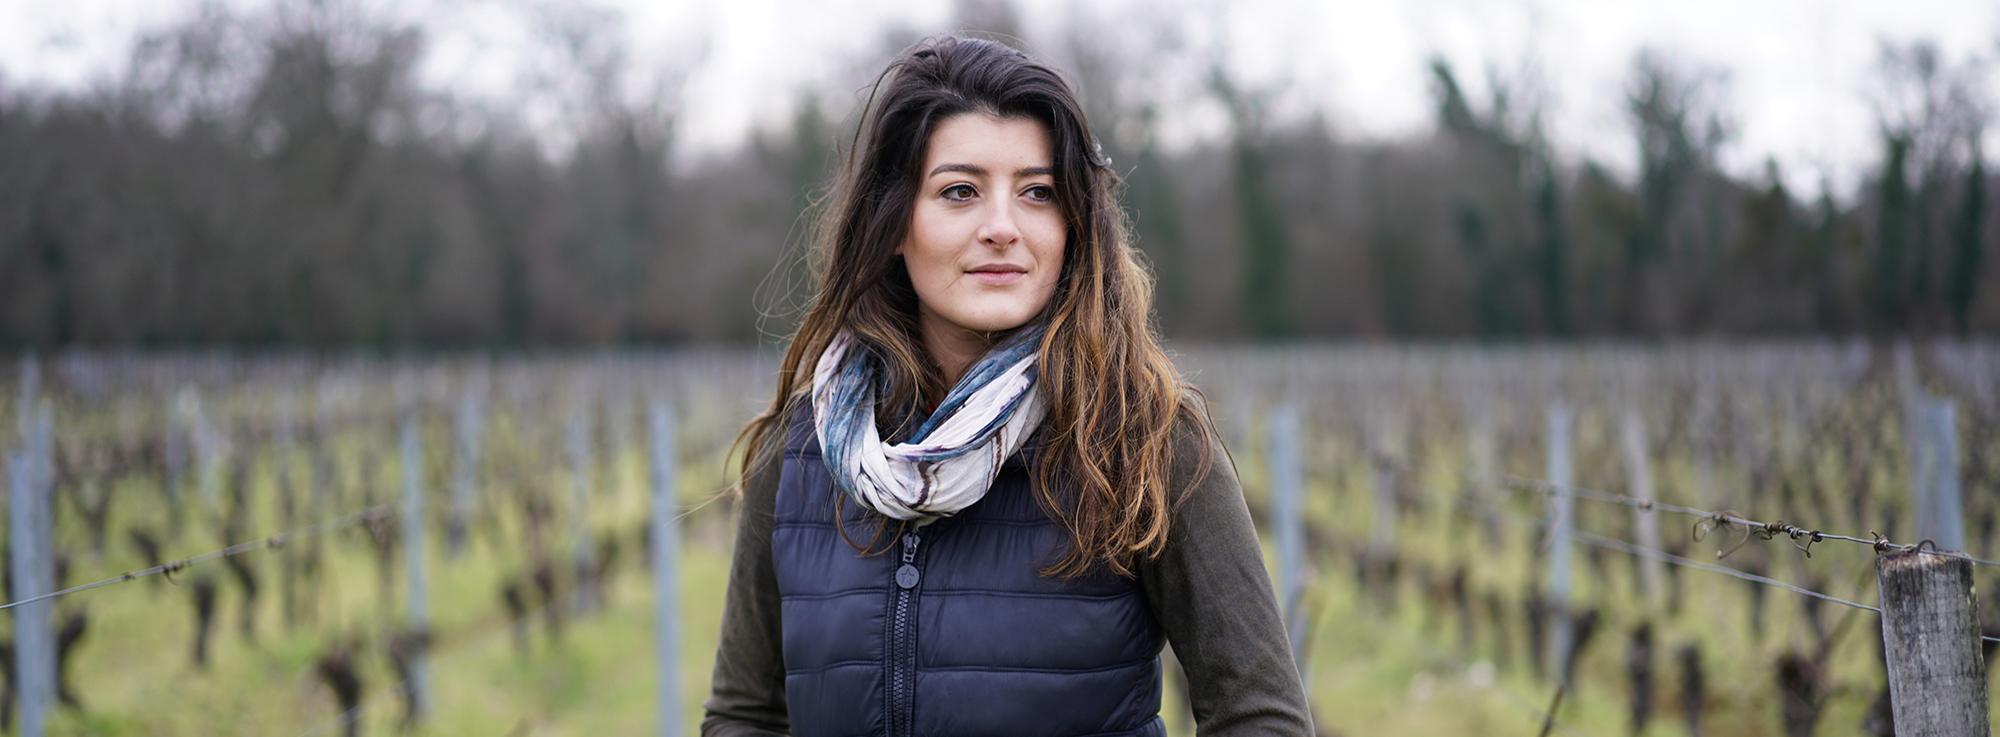 Léa Rodrigues-Lalande: young, female, winemaker.